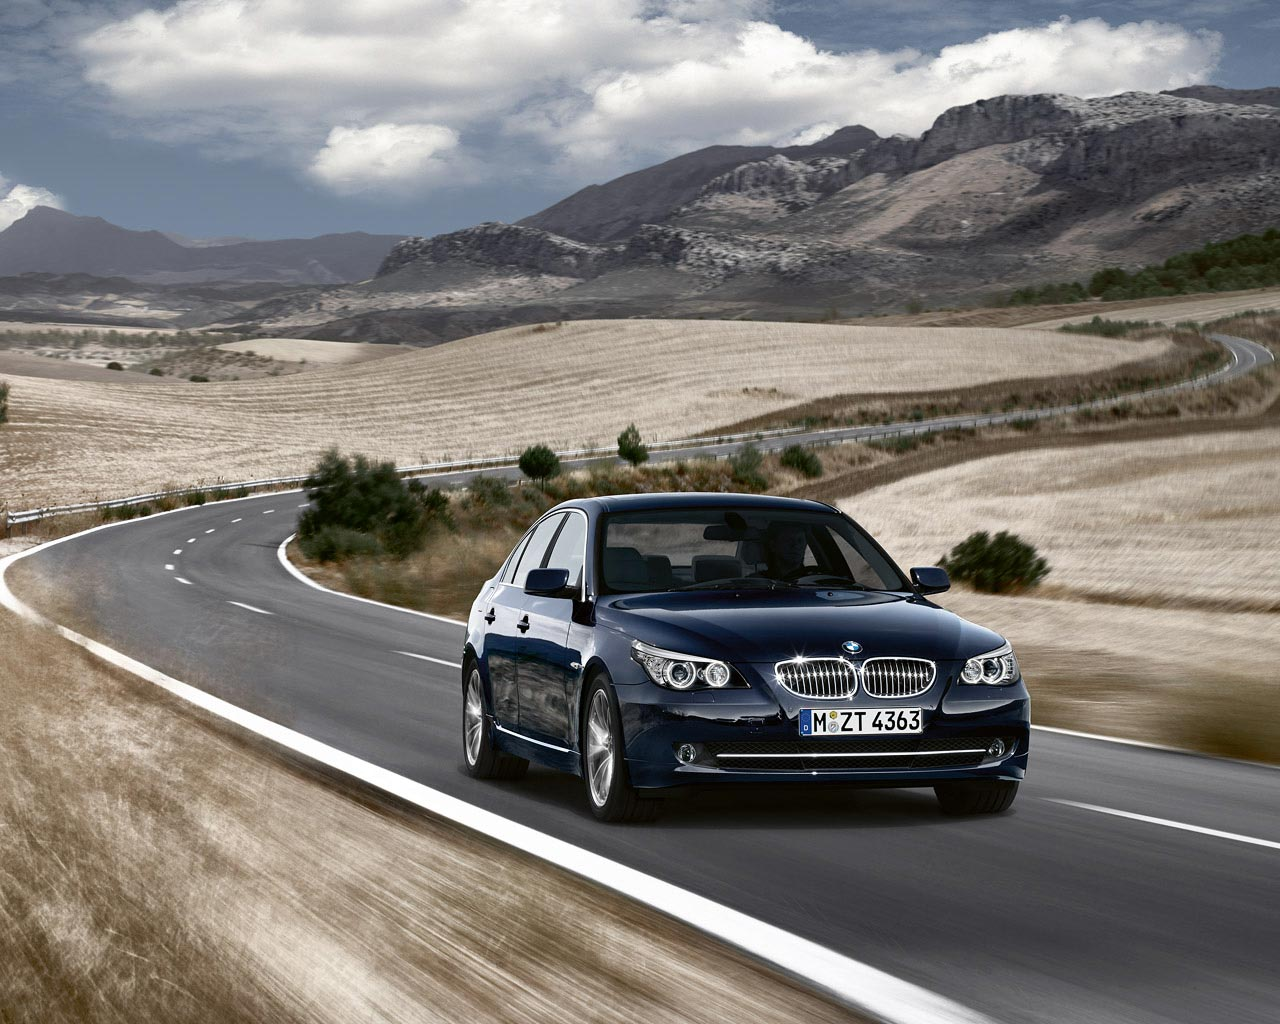 Bmw Car Images Hd Download Bmw Car Wallpaper Wallpapers For Free